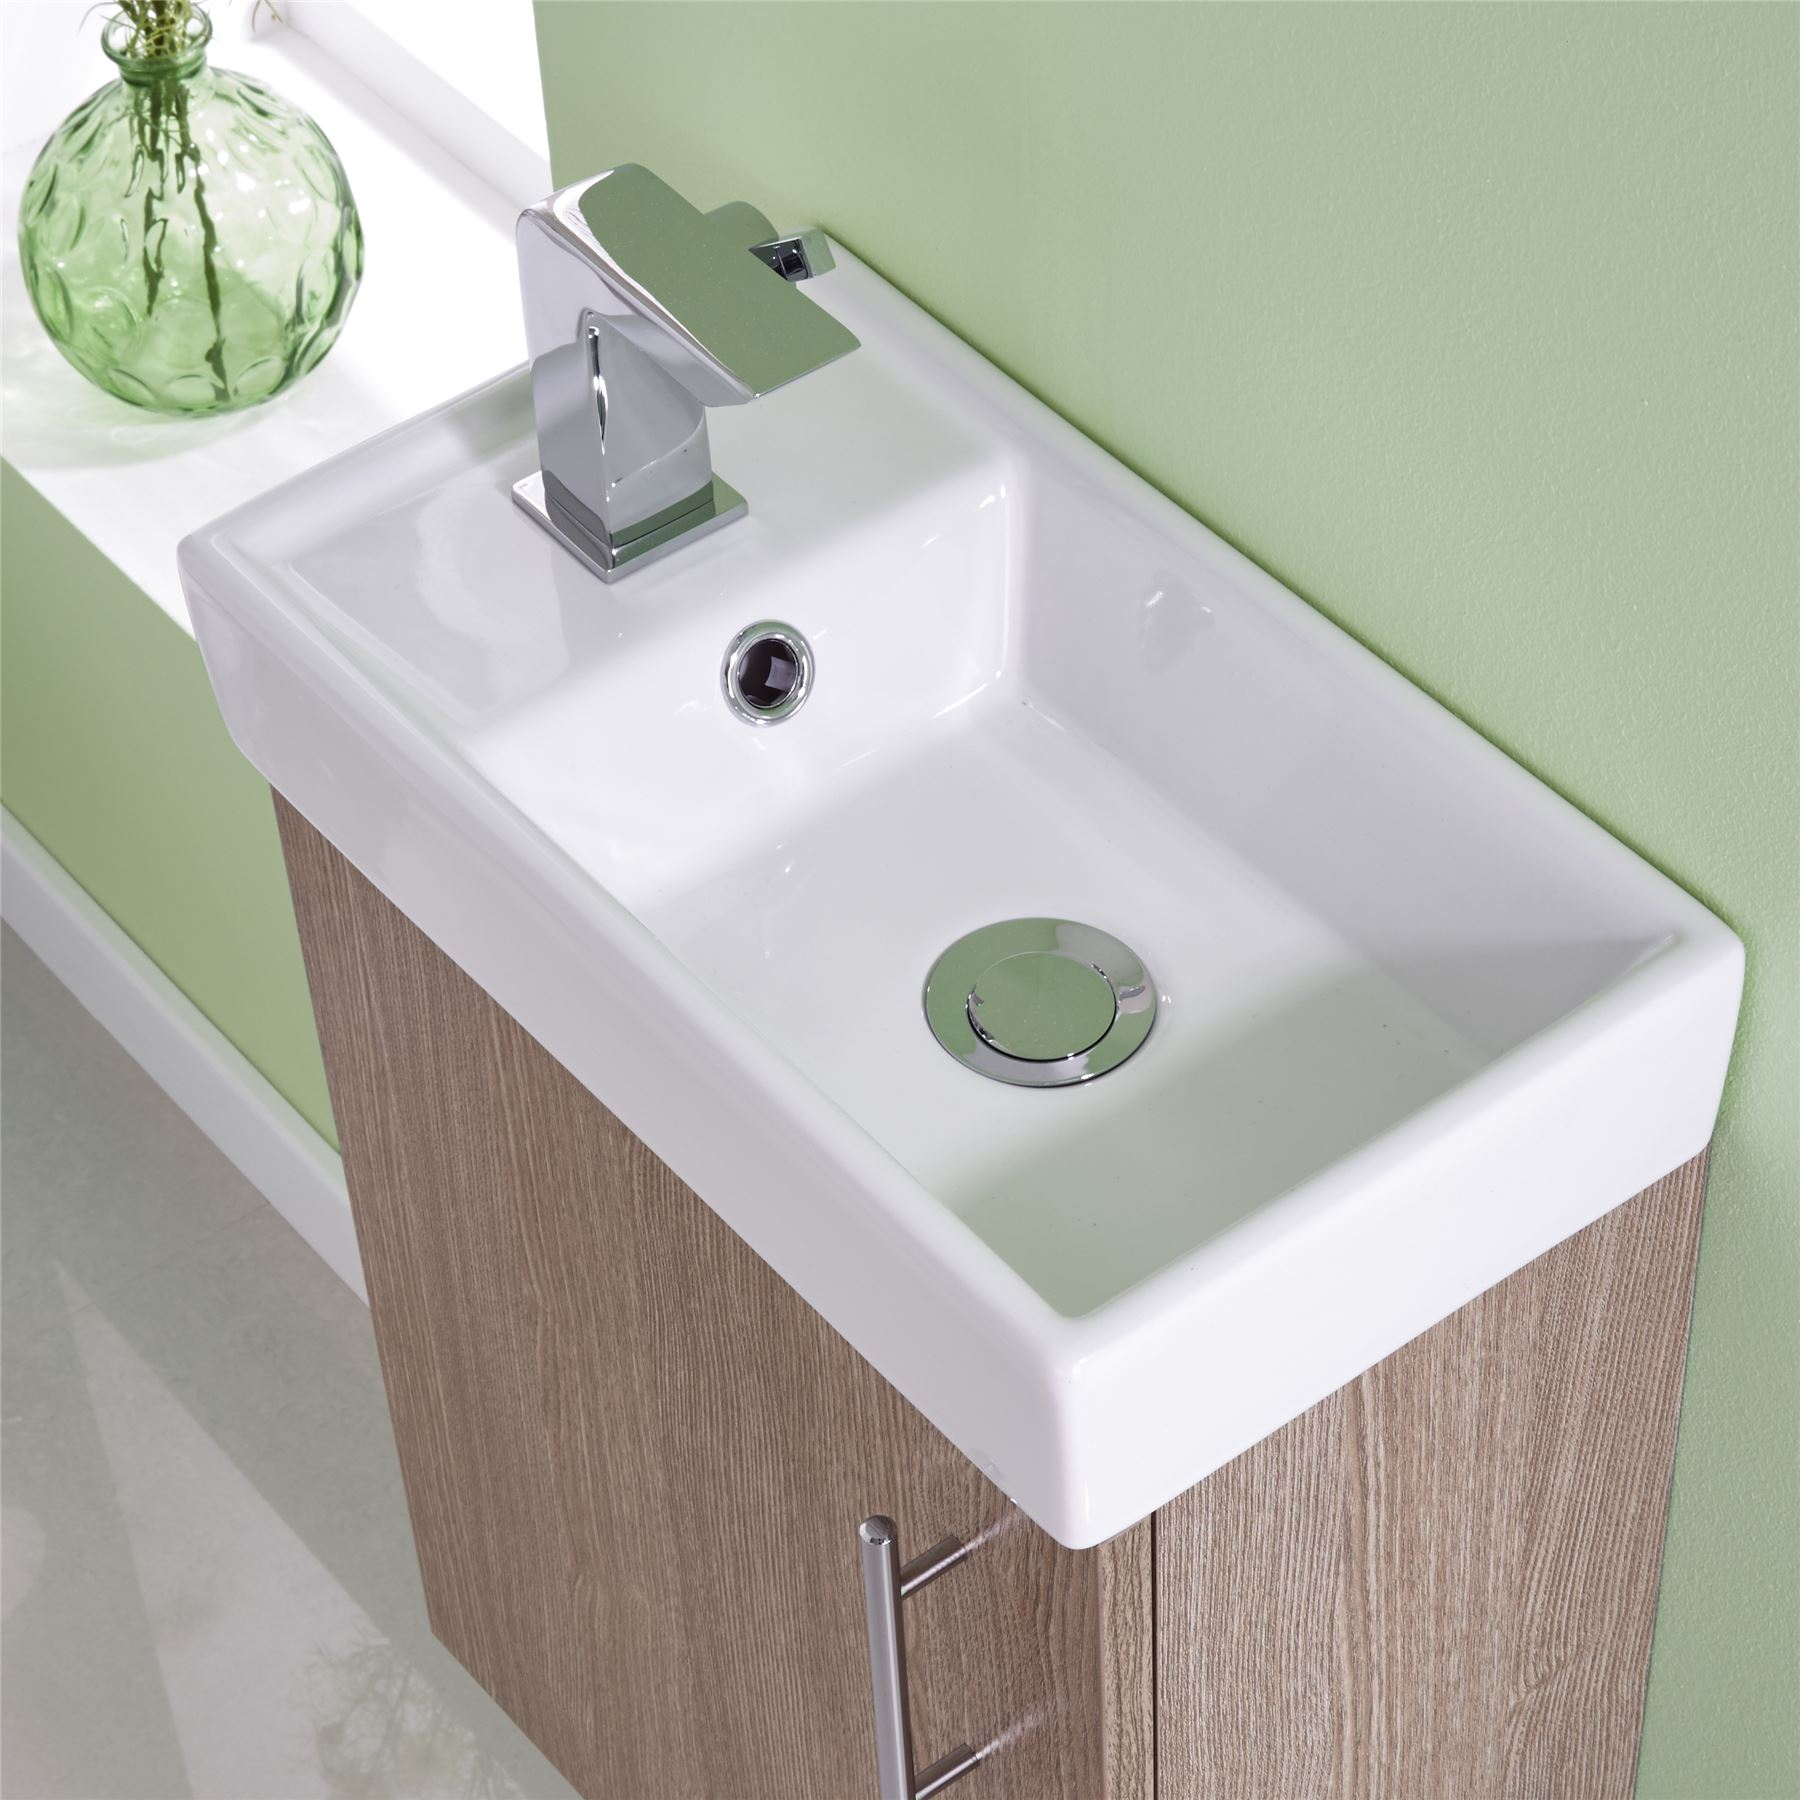 Wall Hung Cloakroom Basin Unit : ... Modern Bathroom Cloakroom Vanity Unit & Basin Sink Floor & Wall Hung